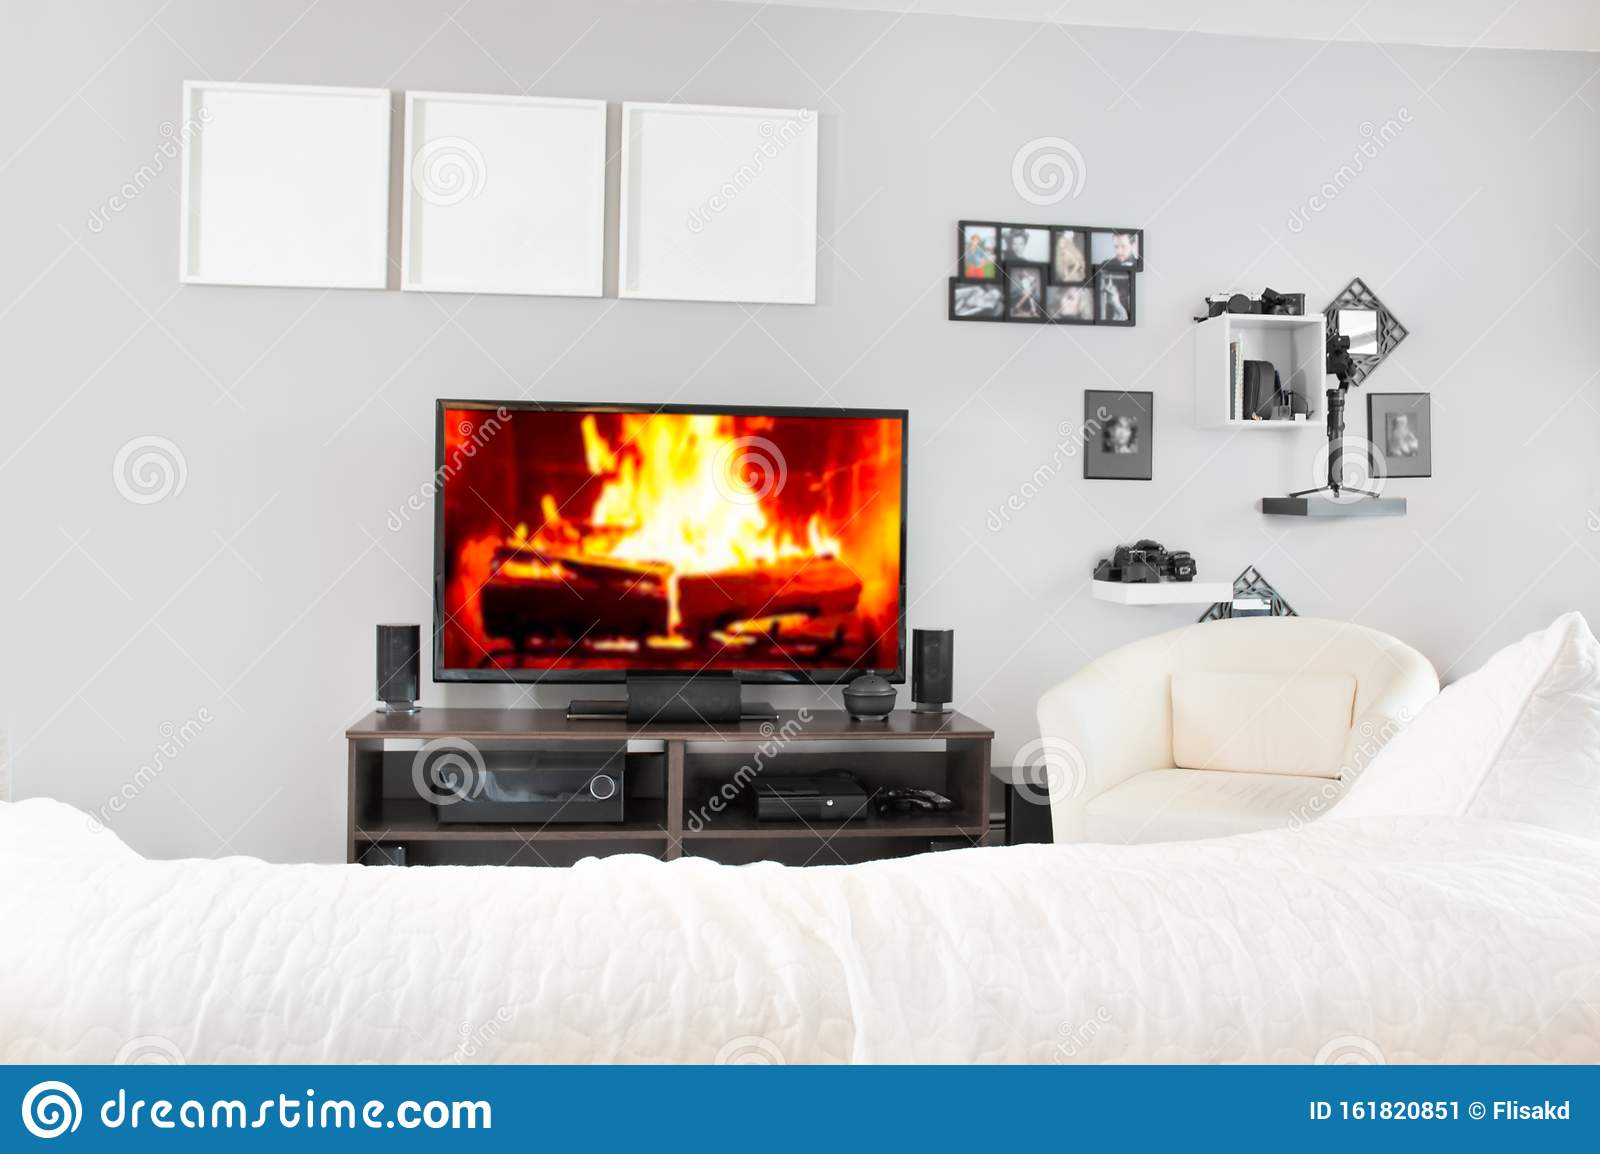 Cozy Interior Of Living Room With Tv Fireplace On Television Screen Stock Image Image Of Plasma Beautiful 161820851